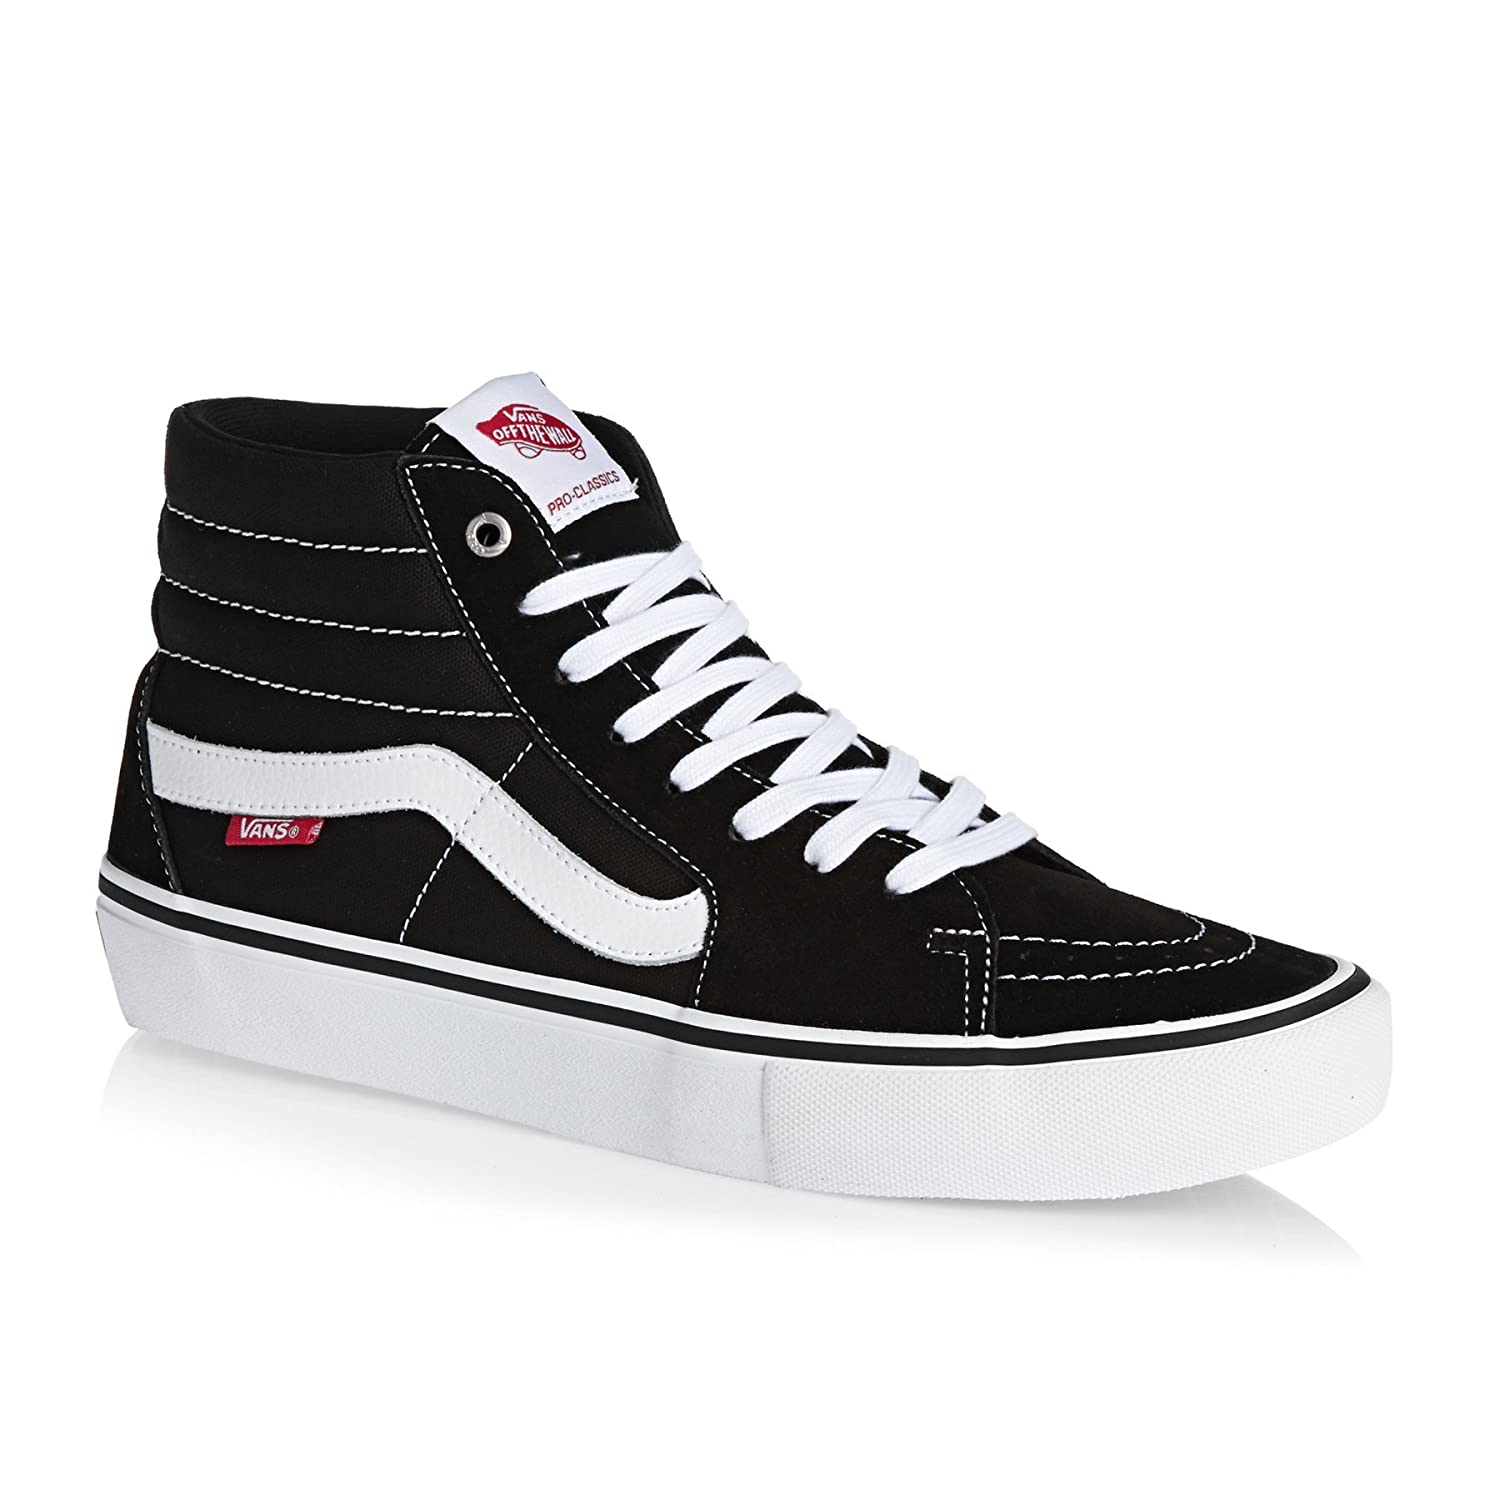 Vans Sk8-Hi Pro Black/White 7uk 7 UK|Black/White Black/White